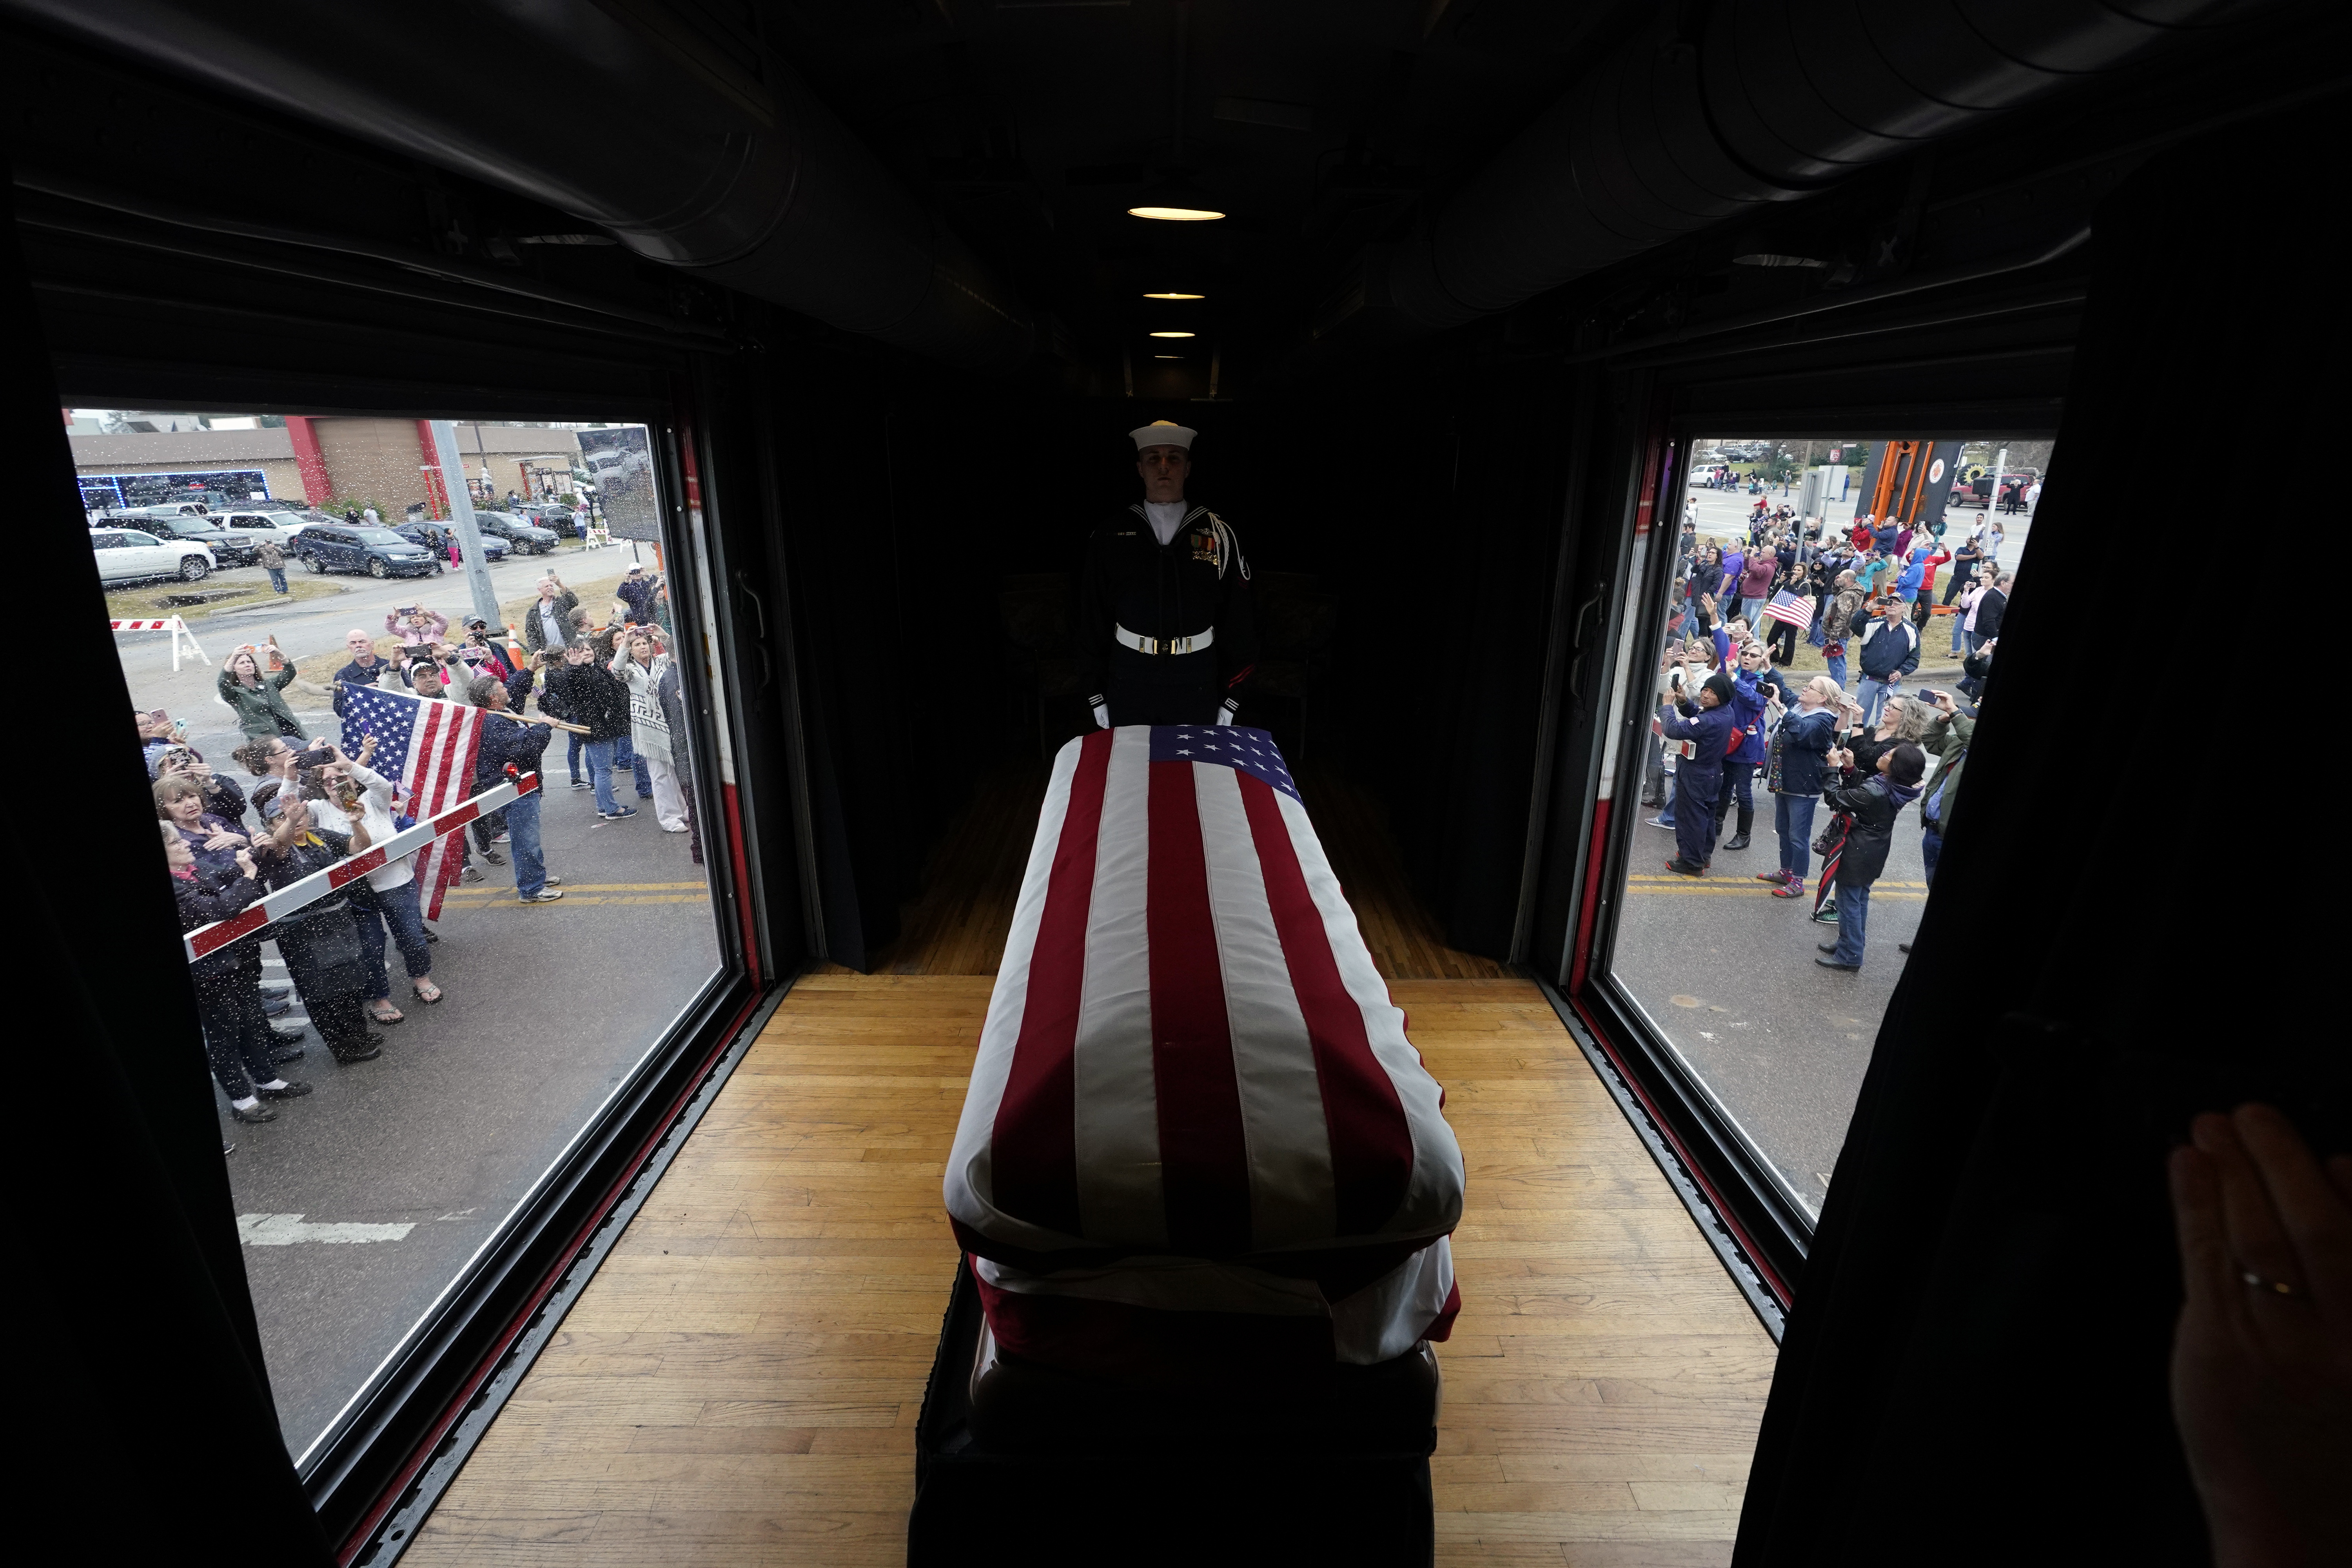 The flag-draped casket of former President George H.W. Bush passes through Magnolia, Texas, Thursday, along the train route to College Station, Texas.